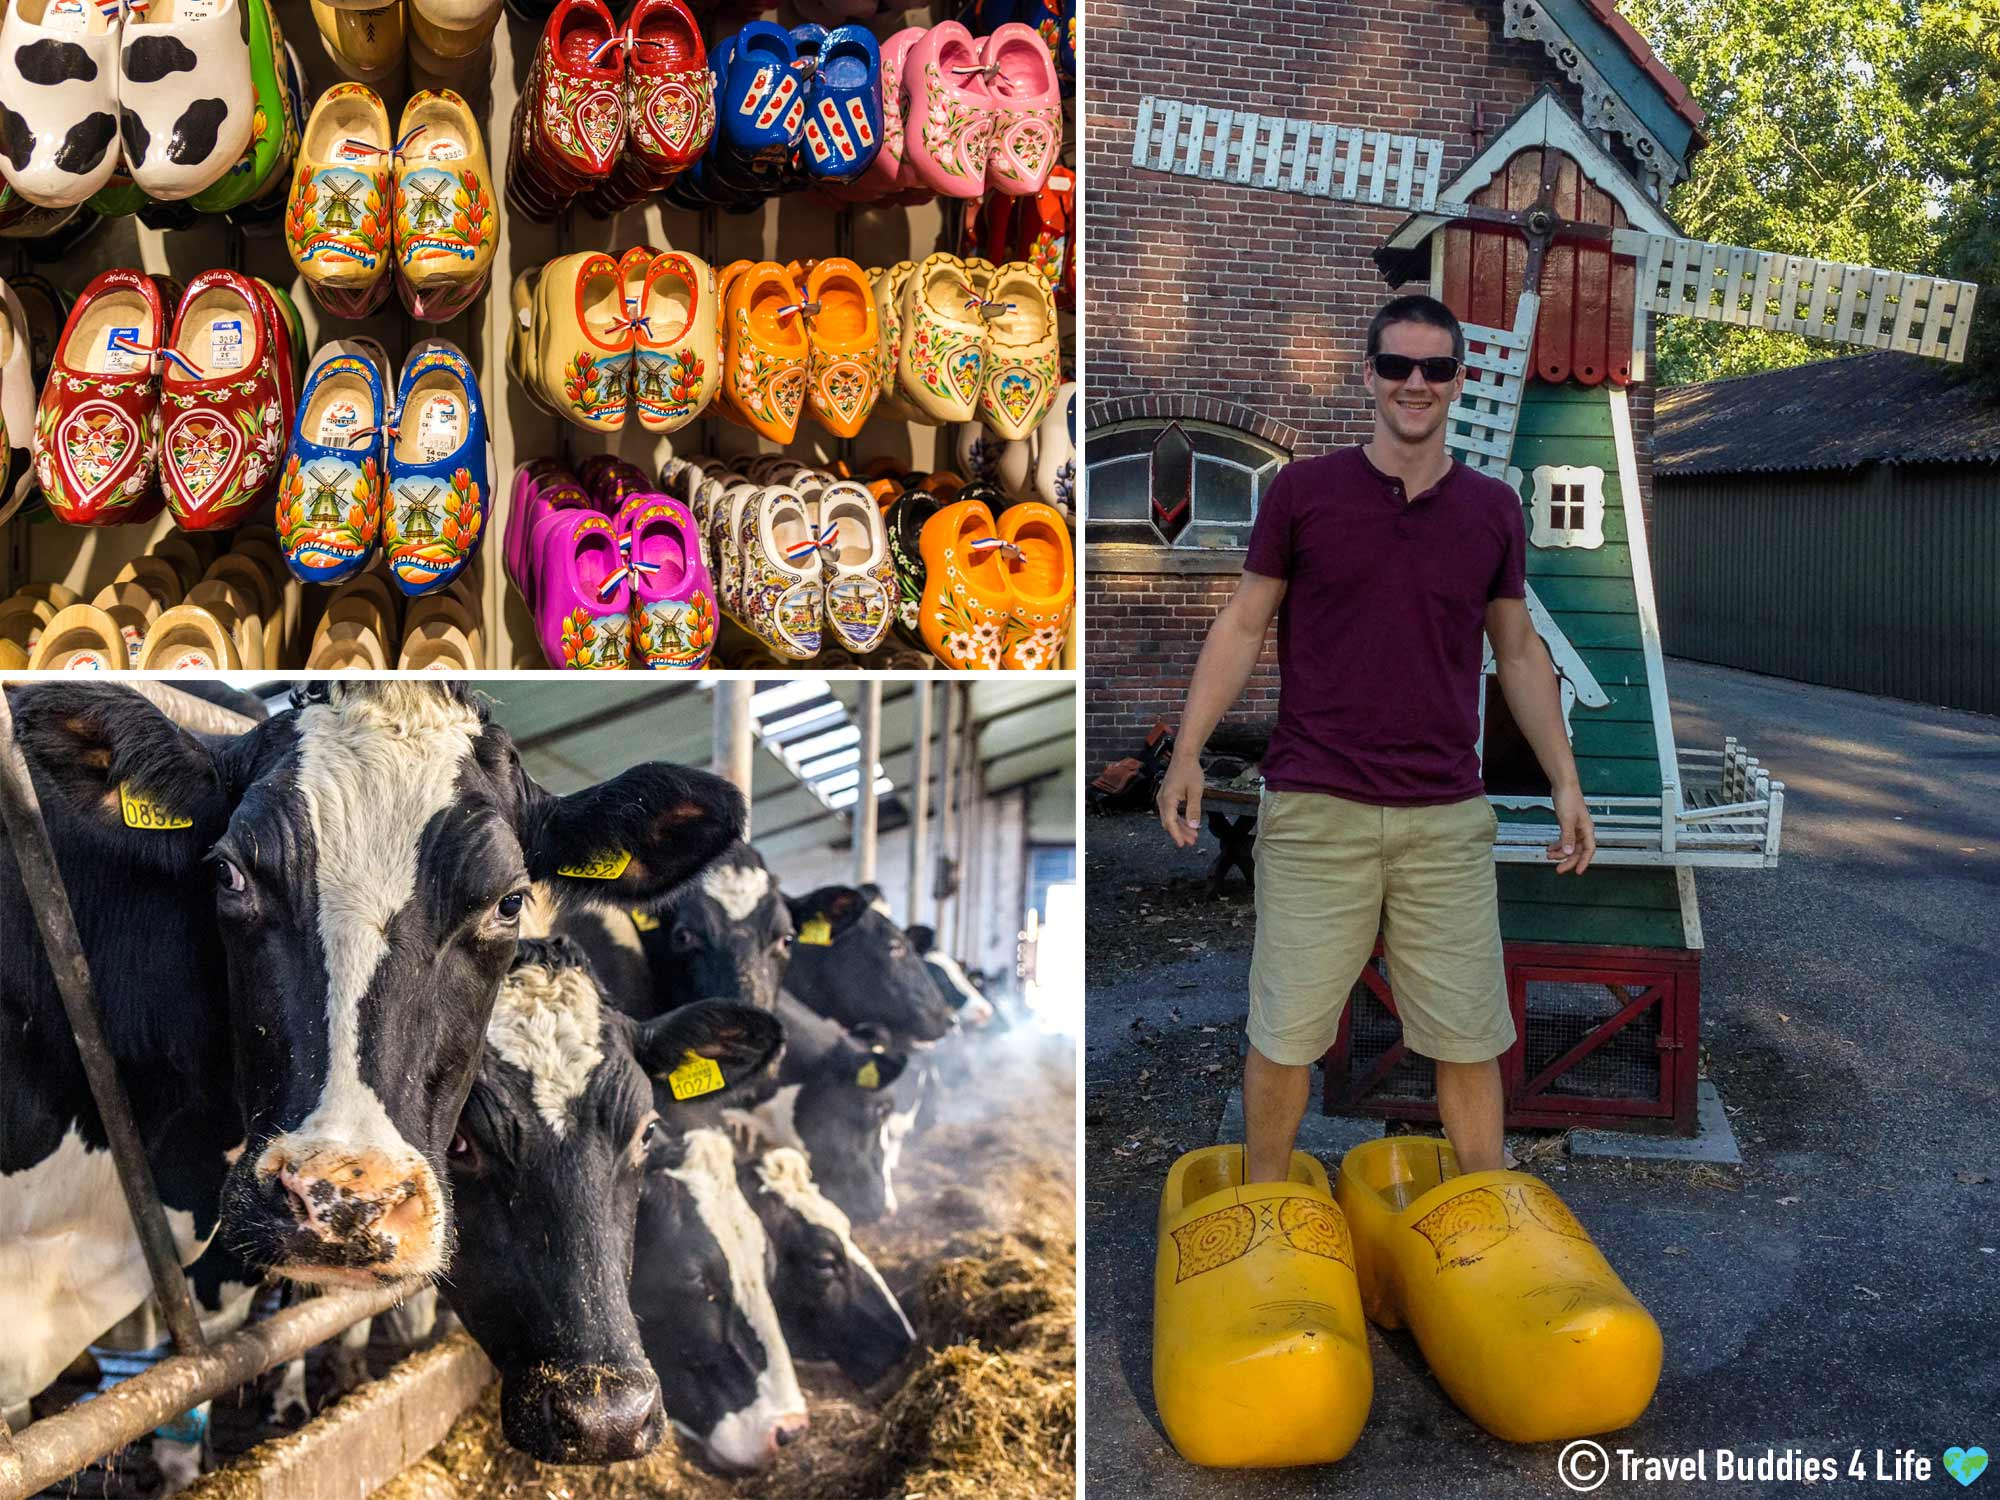 The Dutch The Clog And Cheese Shop Of Clara Maria In The Southwest Of Amsterdam, The Netherlands